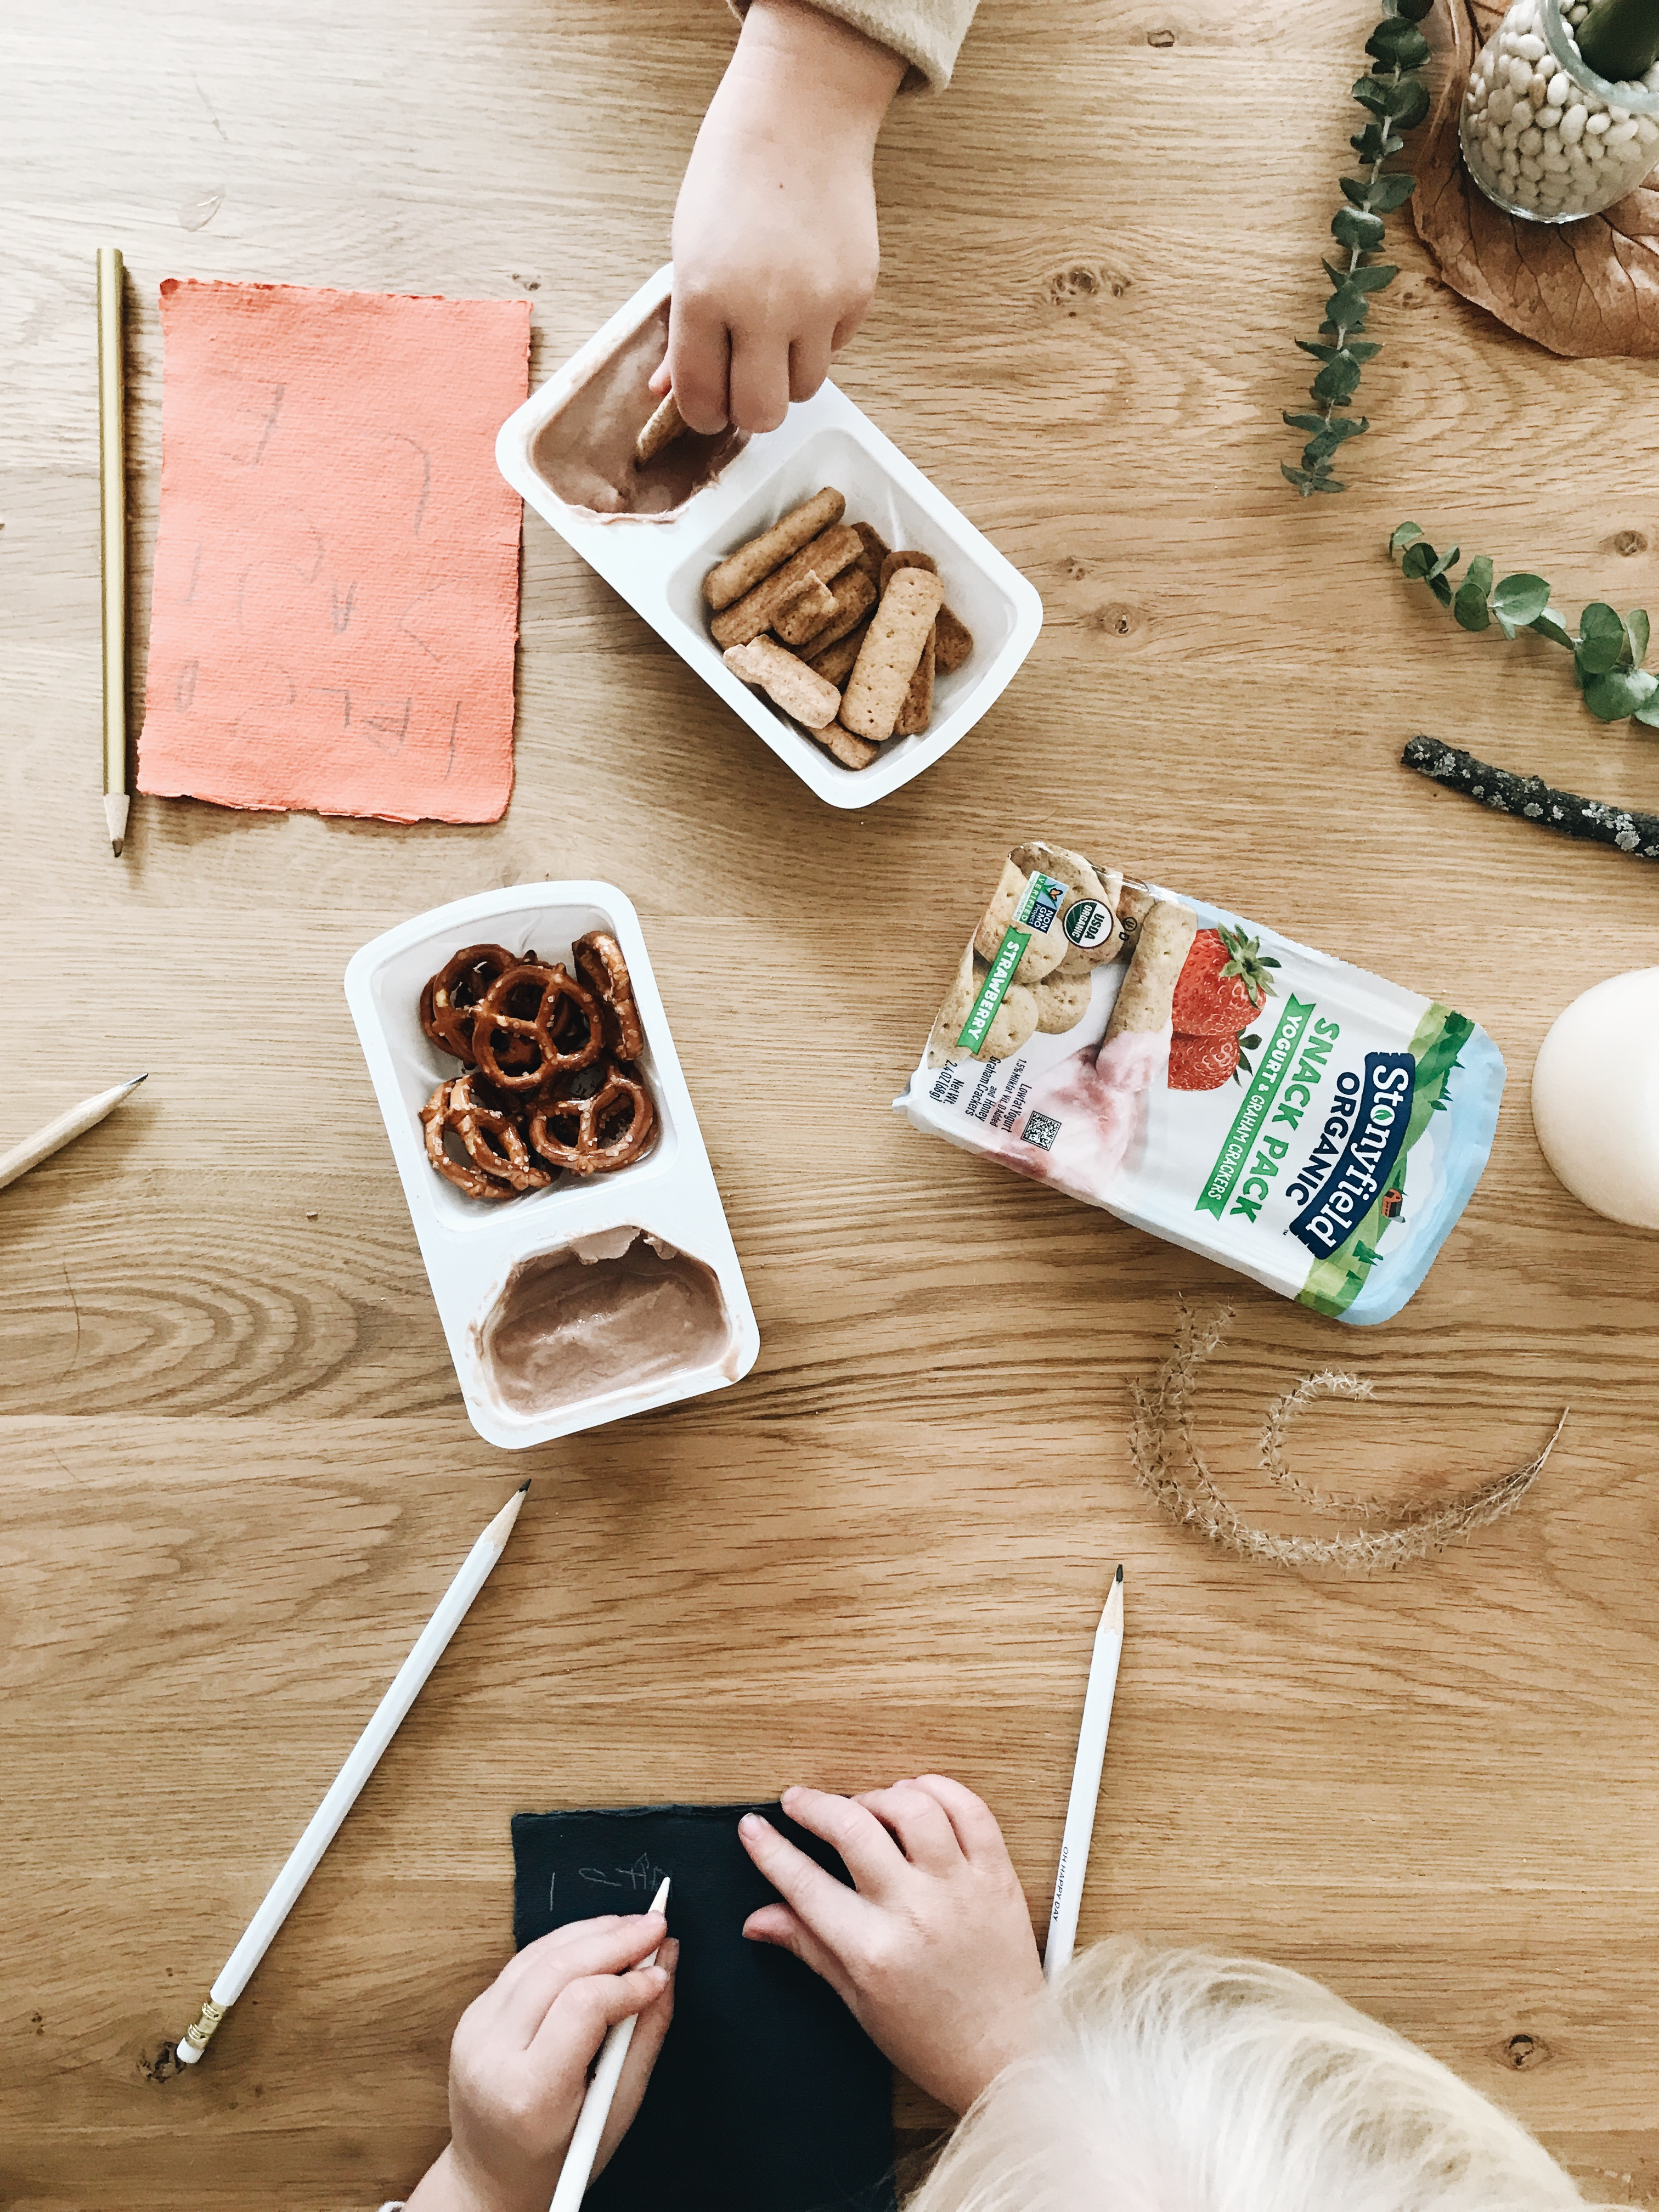 Stonyfield's Organic Snack Packs / Bev Cooks